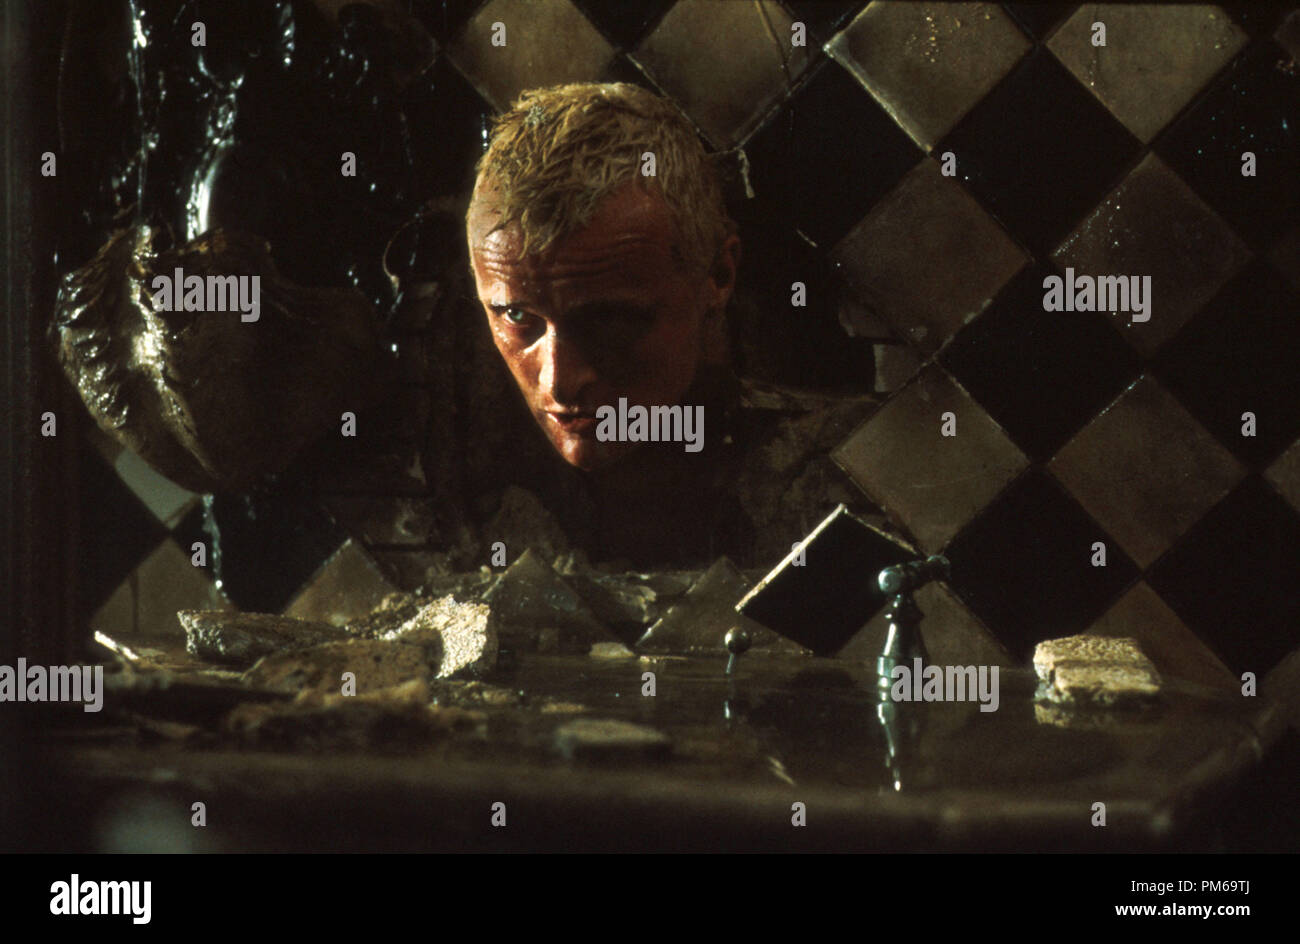 Blade Runner 1982 Rutger HauerStock Photos and Images